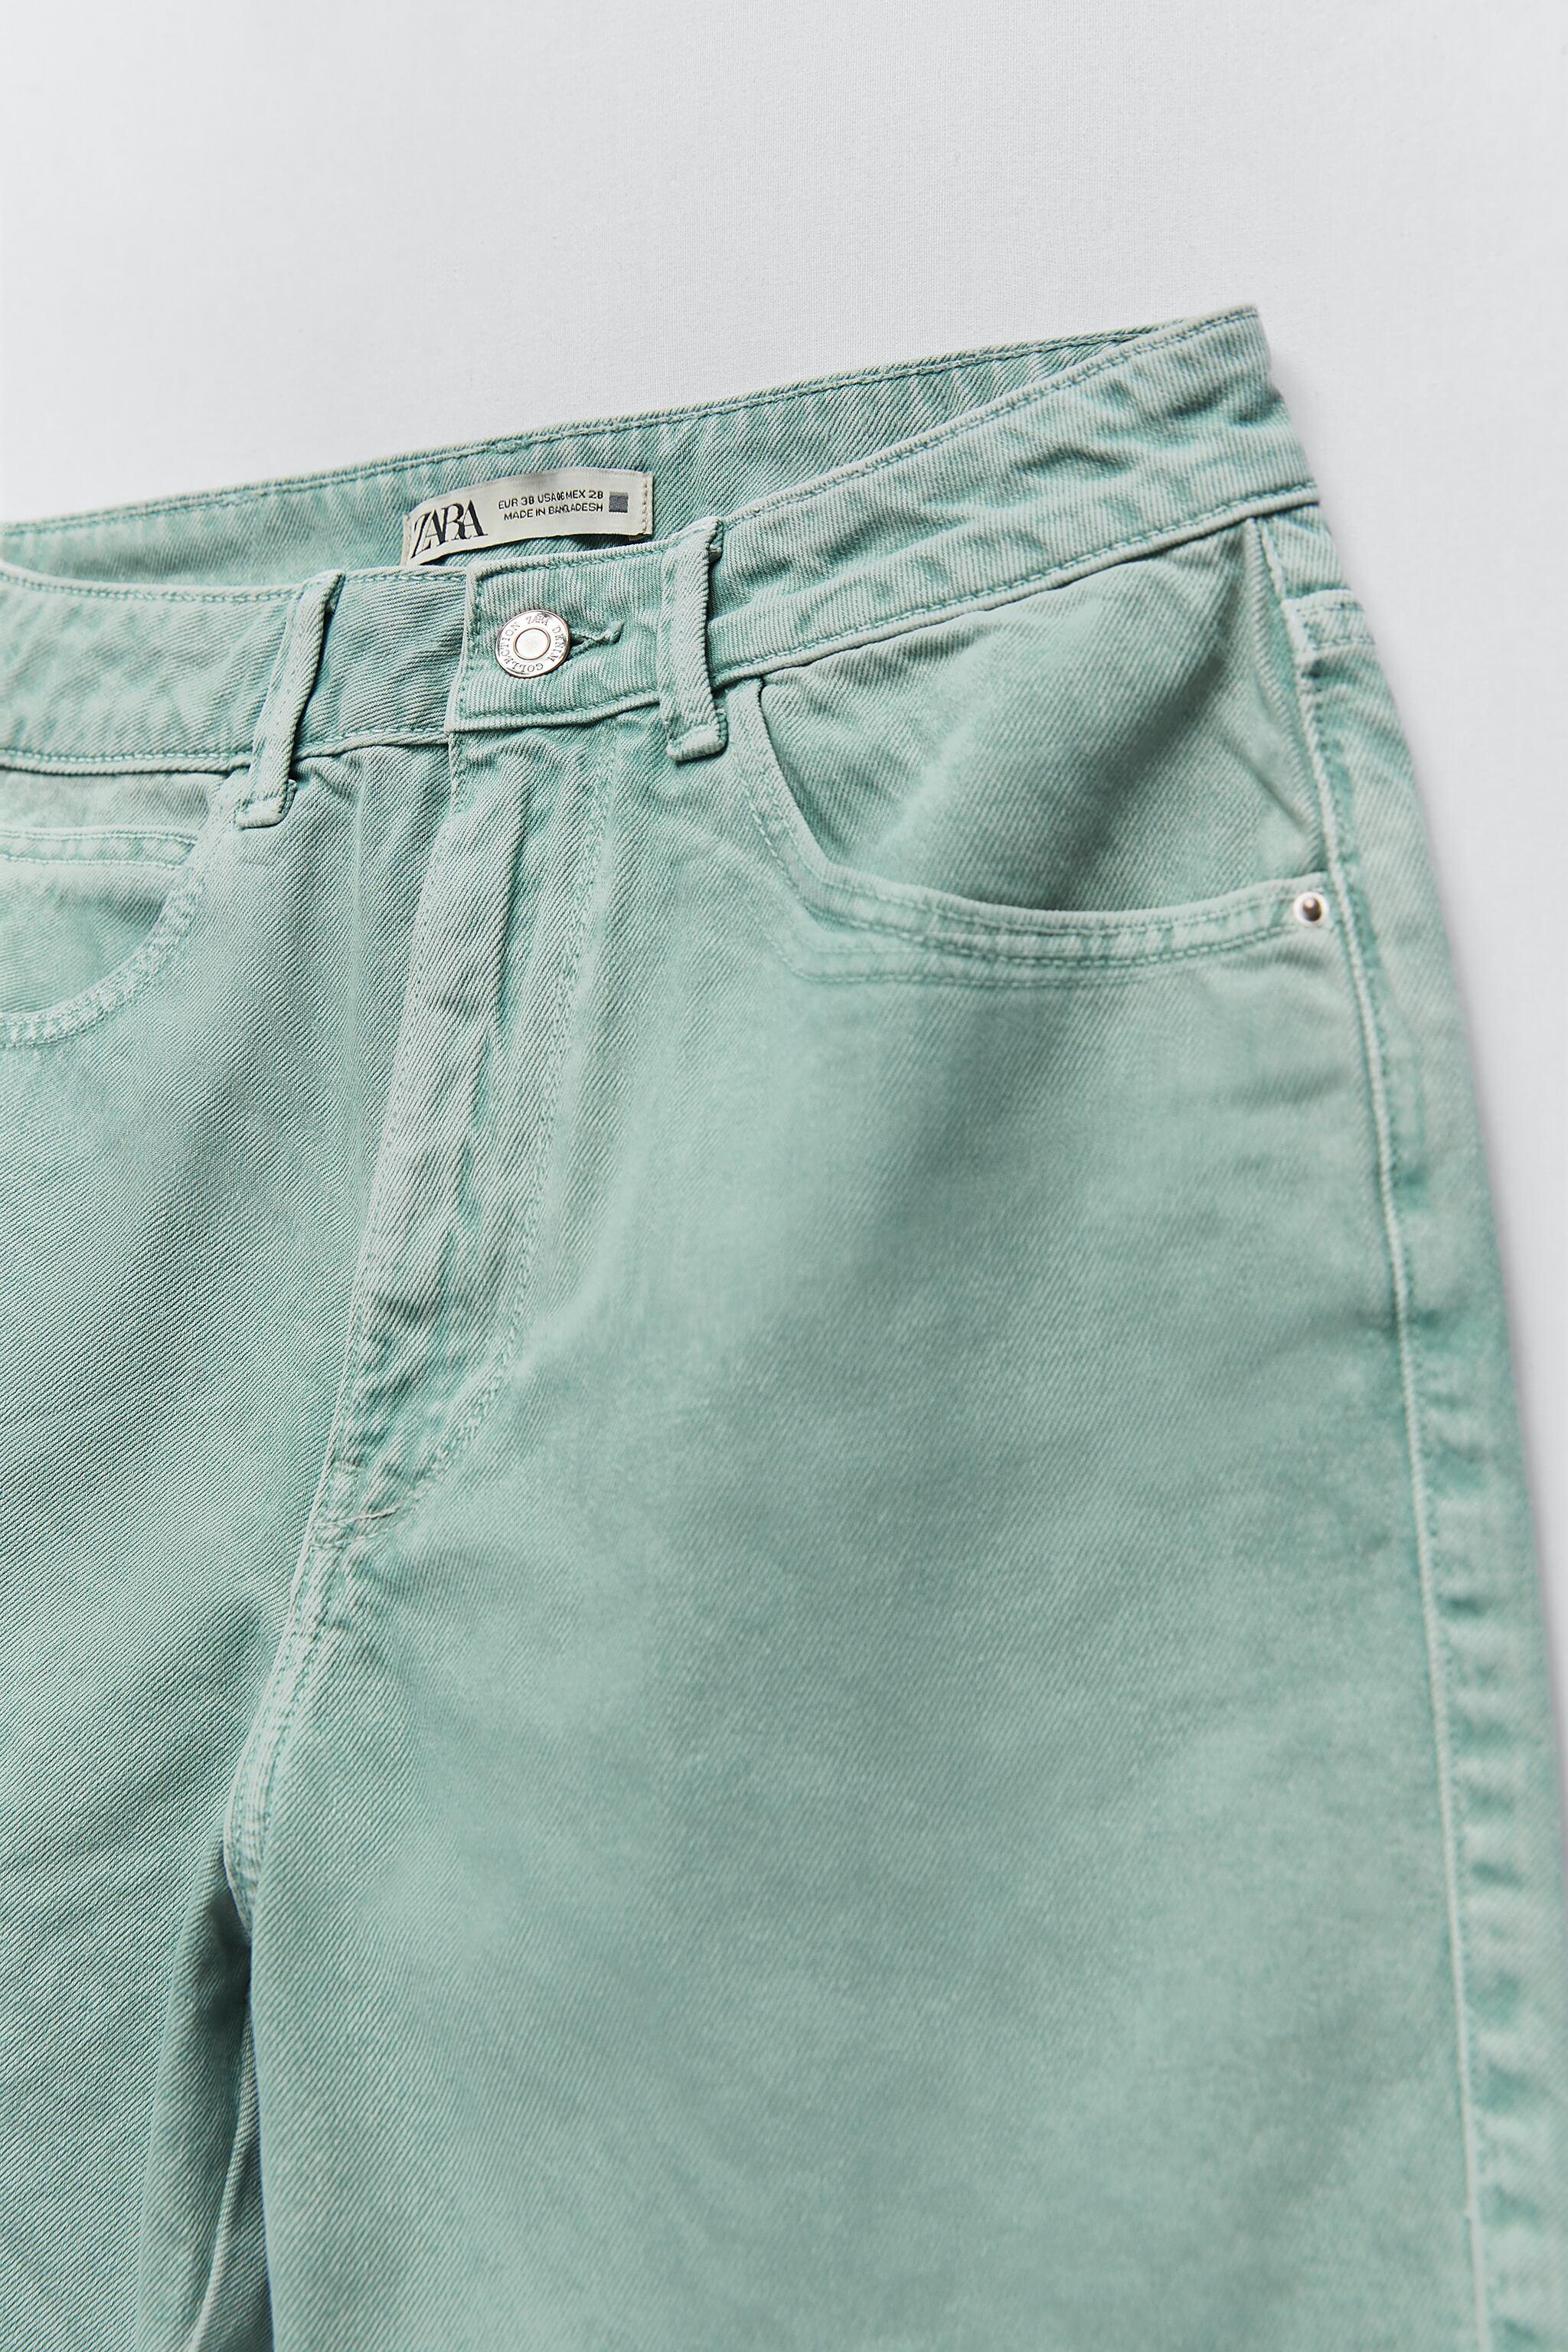 Z1975 HIGH RISE STRAIGHT JEANS 9